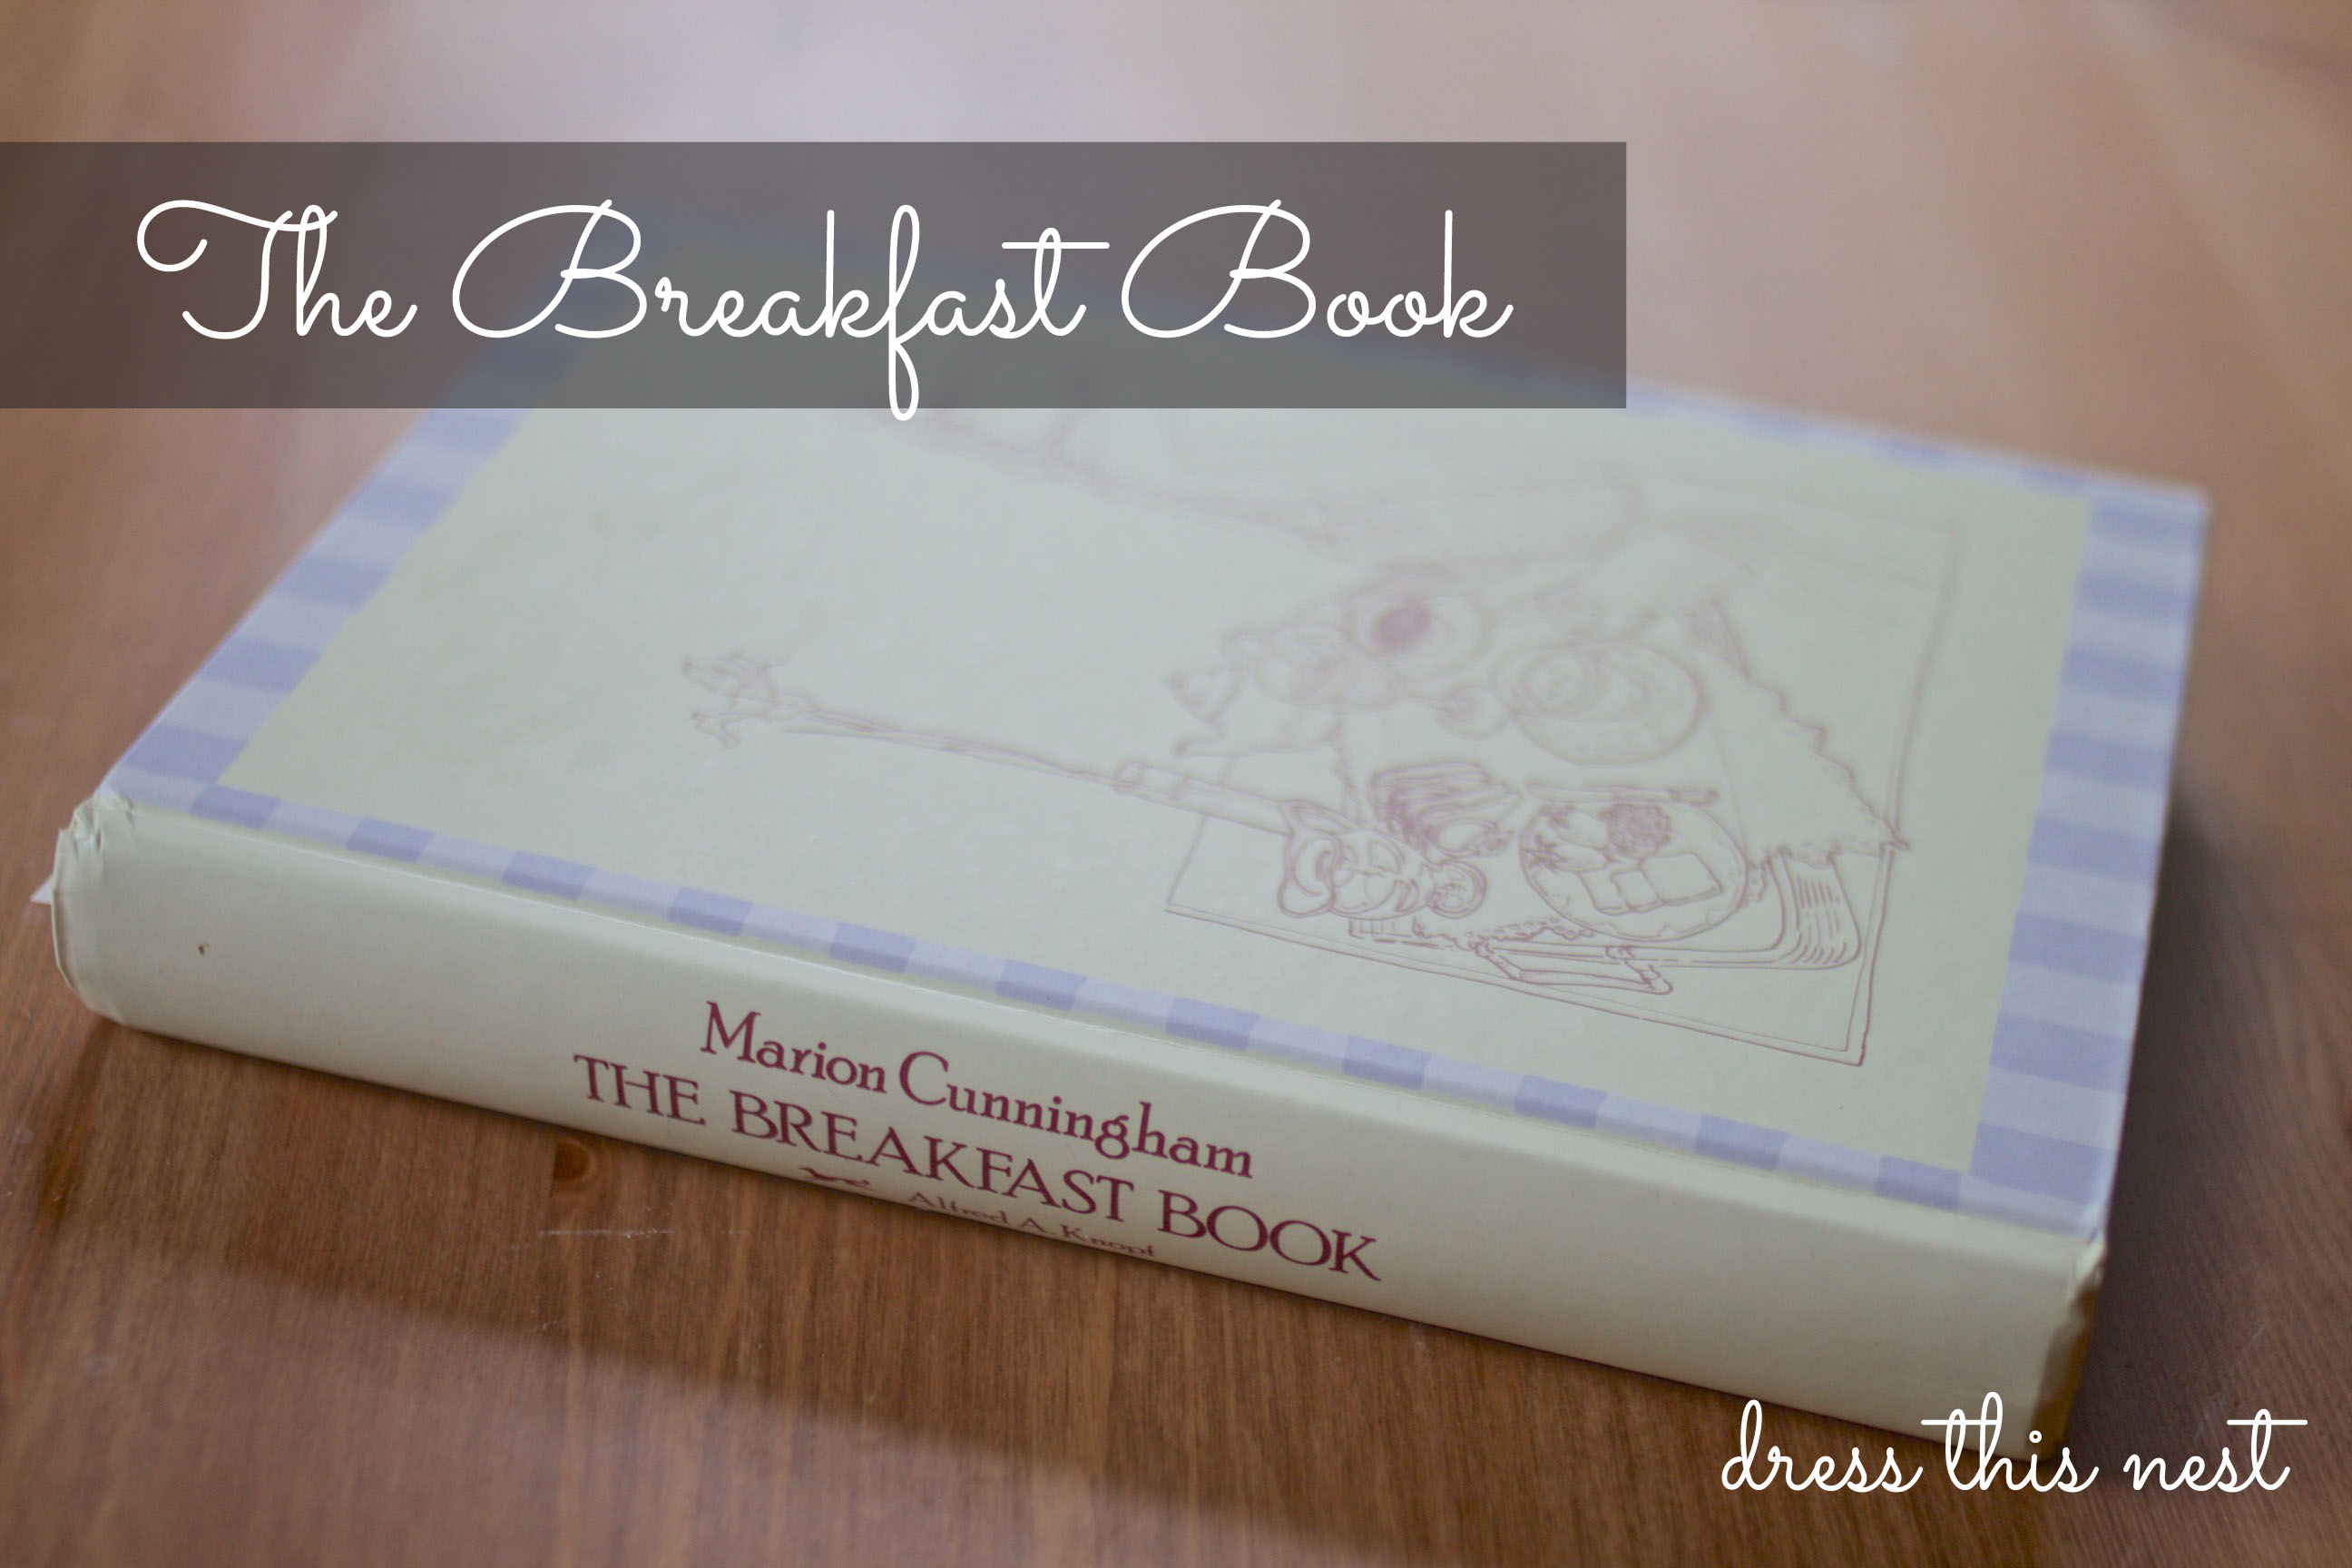 the-breakfast-book-marion-cunningham